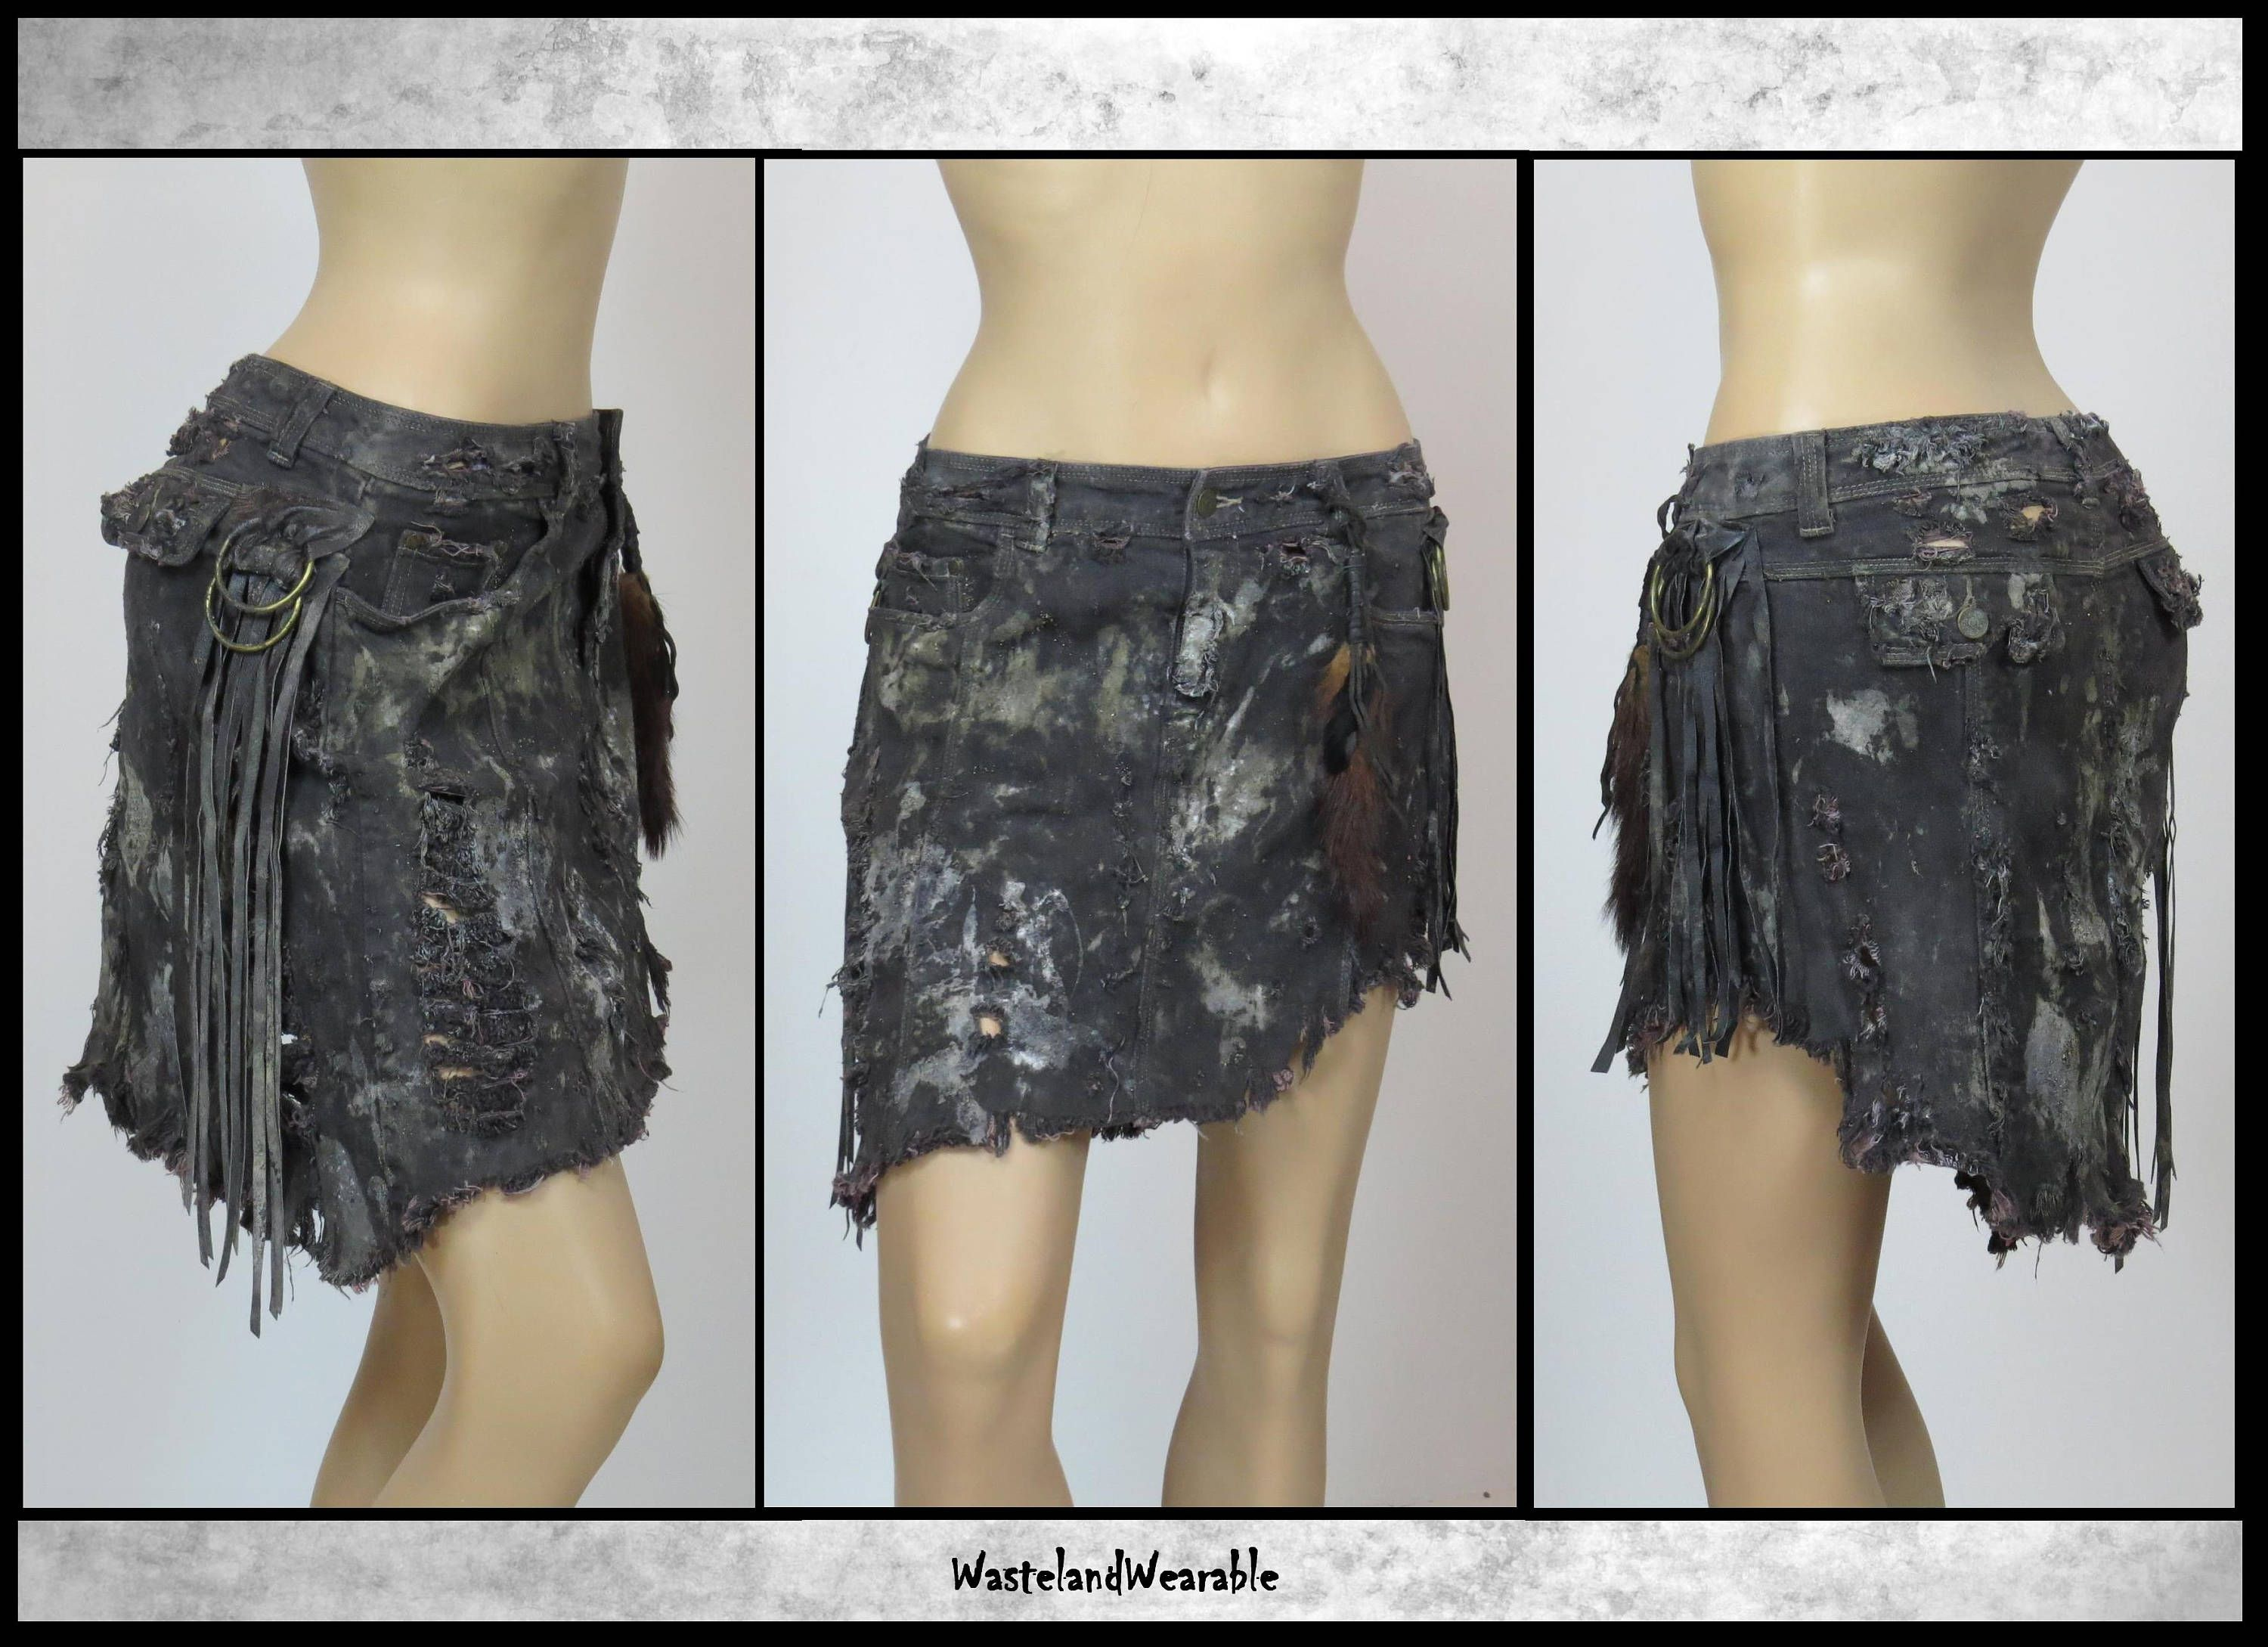 Post APOCALYPTIC SKiRT Black LEATHER FRINGES Wasteland Skirt Mad Max Fury Road Skirt Size 12  The Walking Dead Skirt by WastelandWearable by WastelandWearable on Etsy